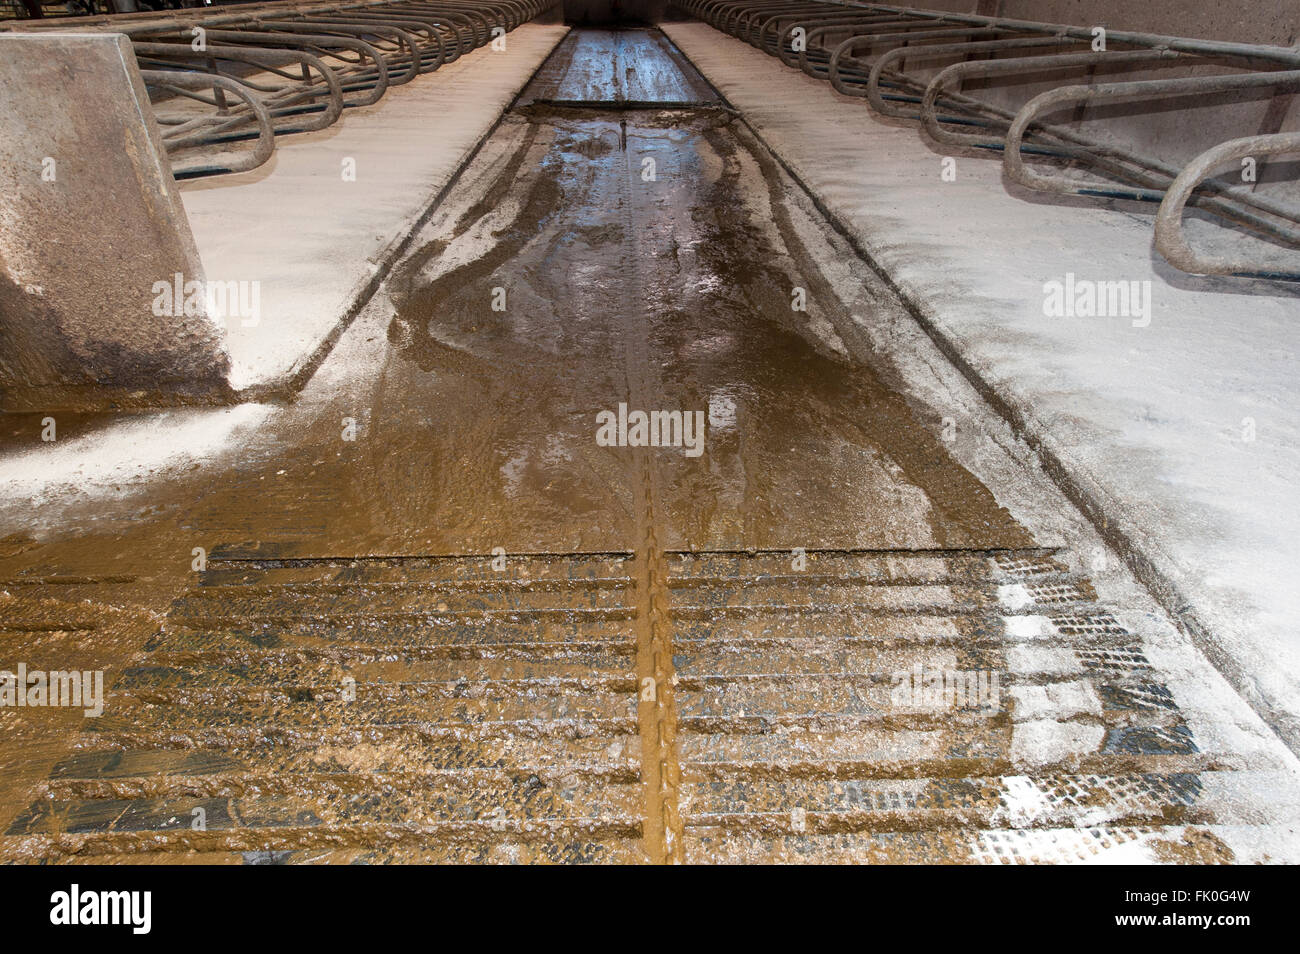 Cow Shed Uk Stock Photos Amp Cow Shed Uk Stock Images Alamy